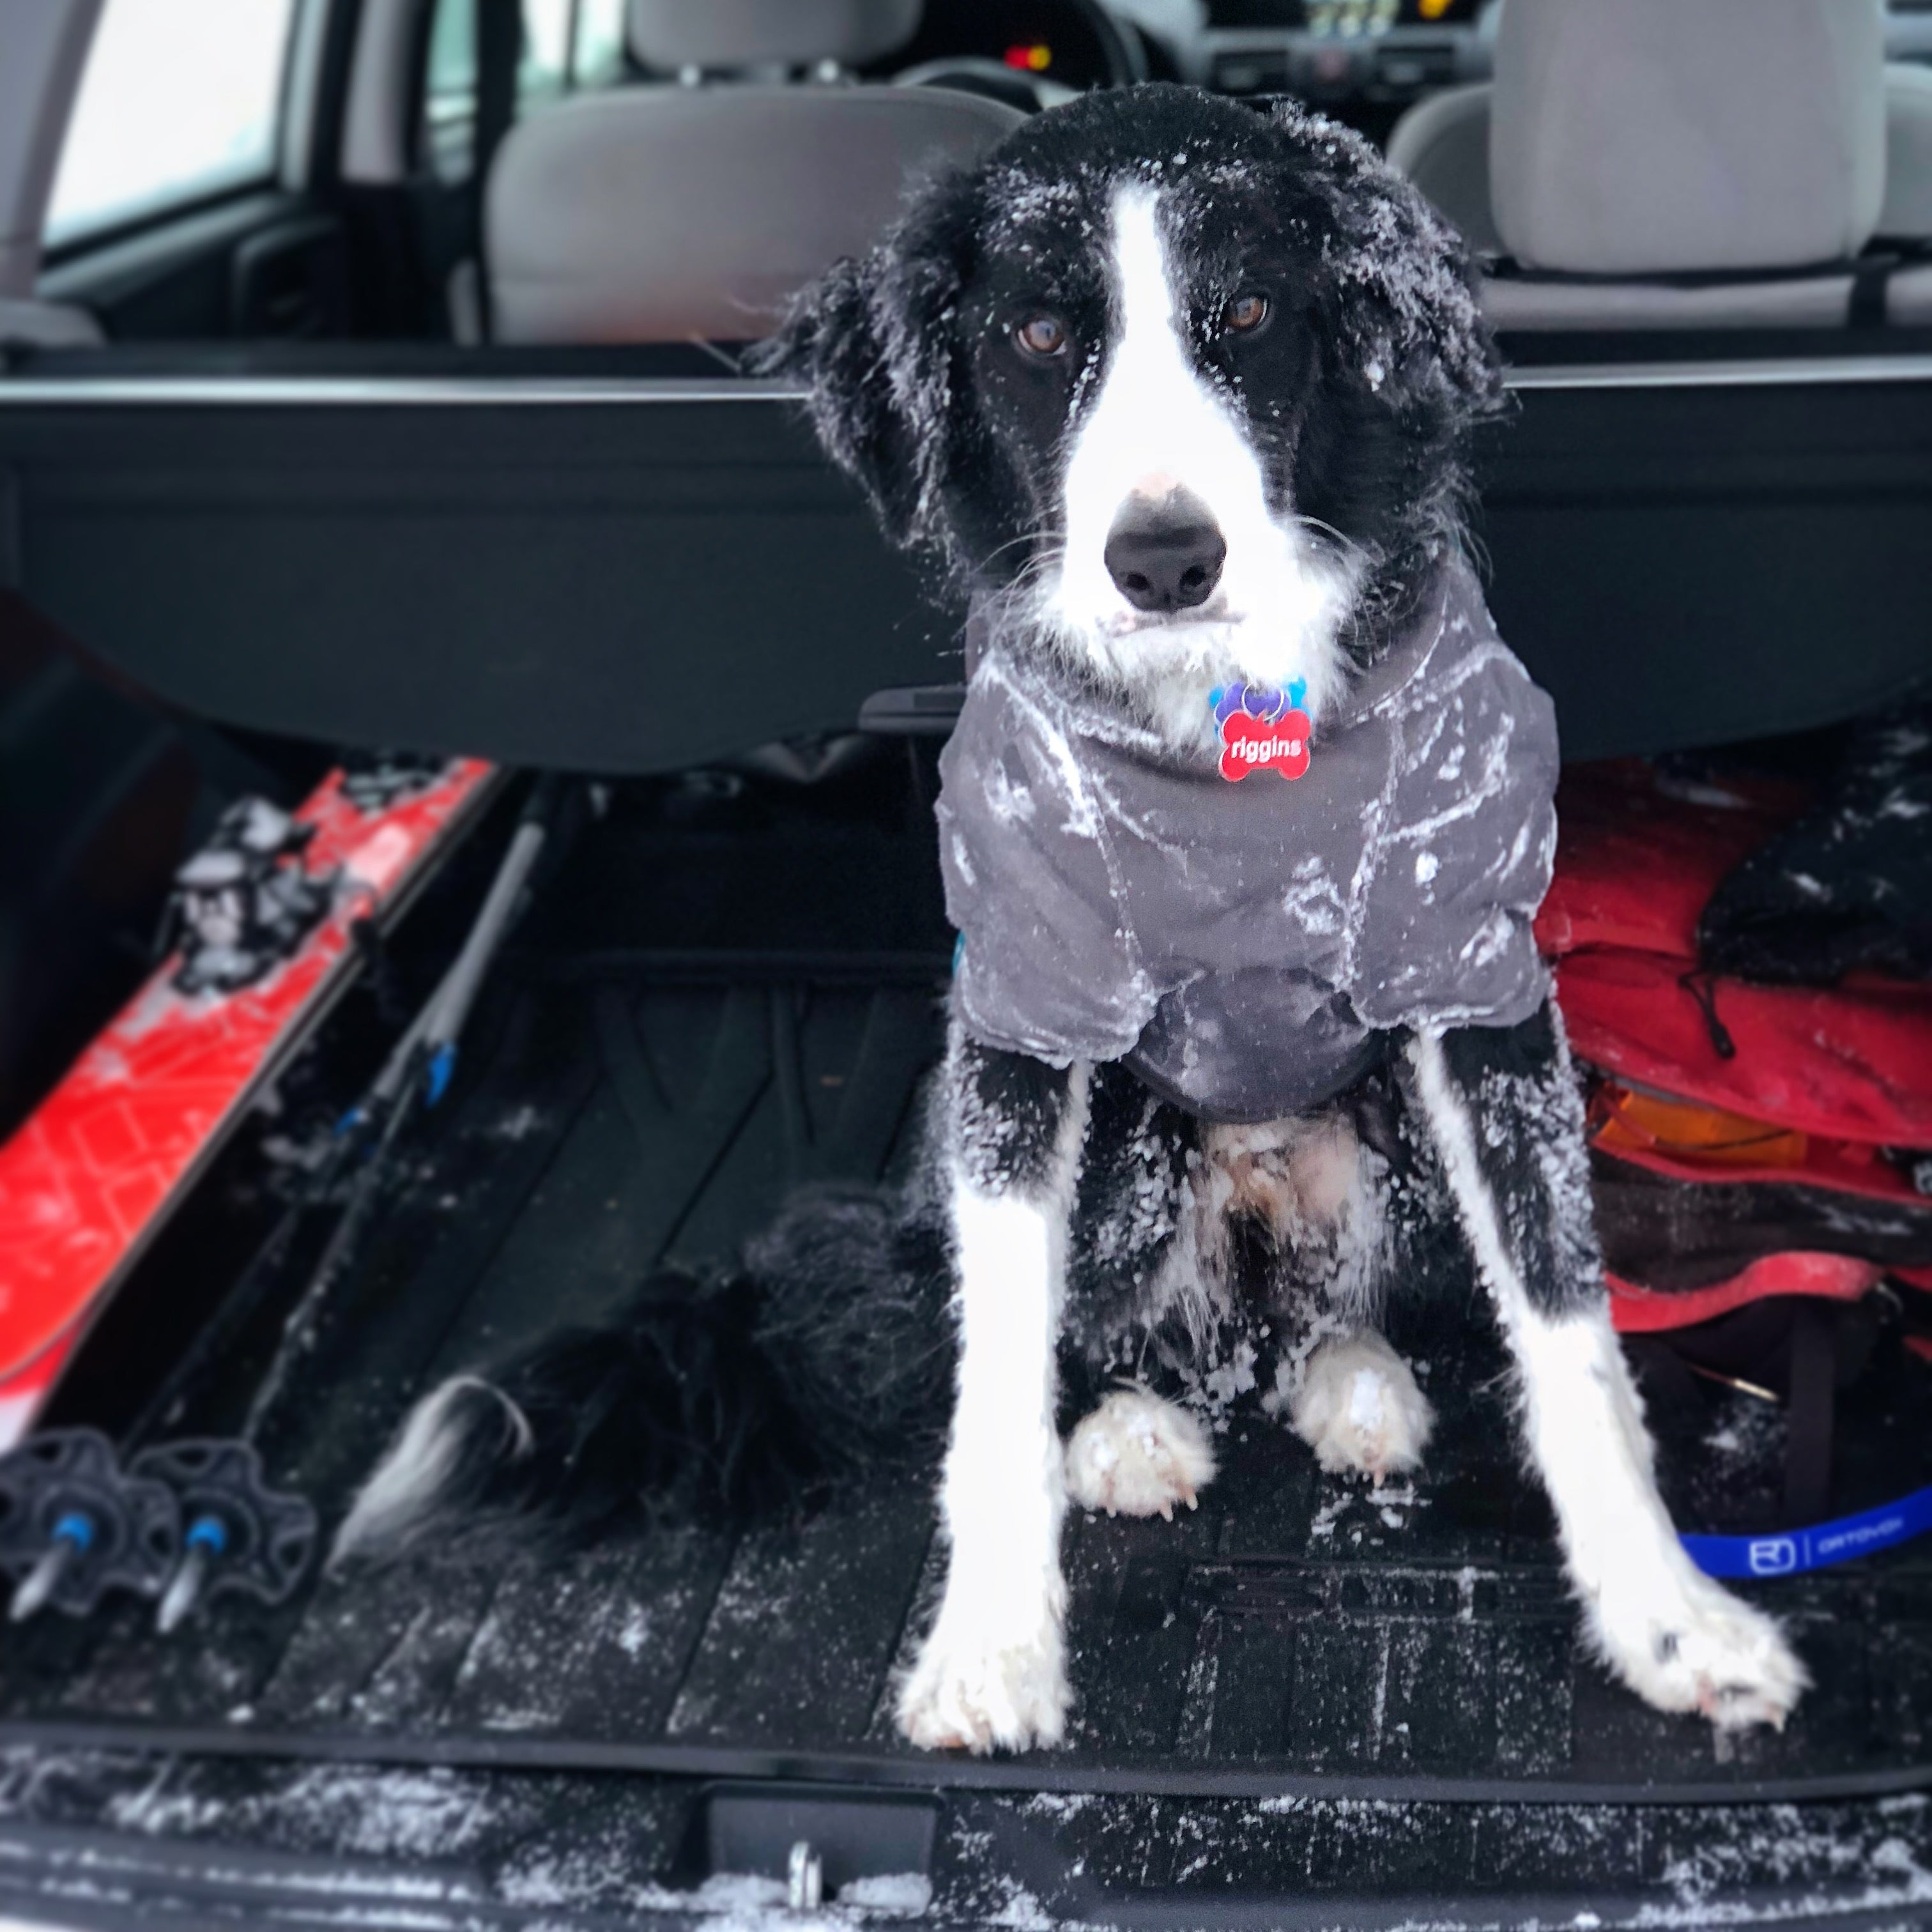 Riggins in back of car covered in icicles after skiing.